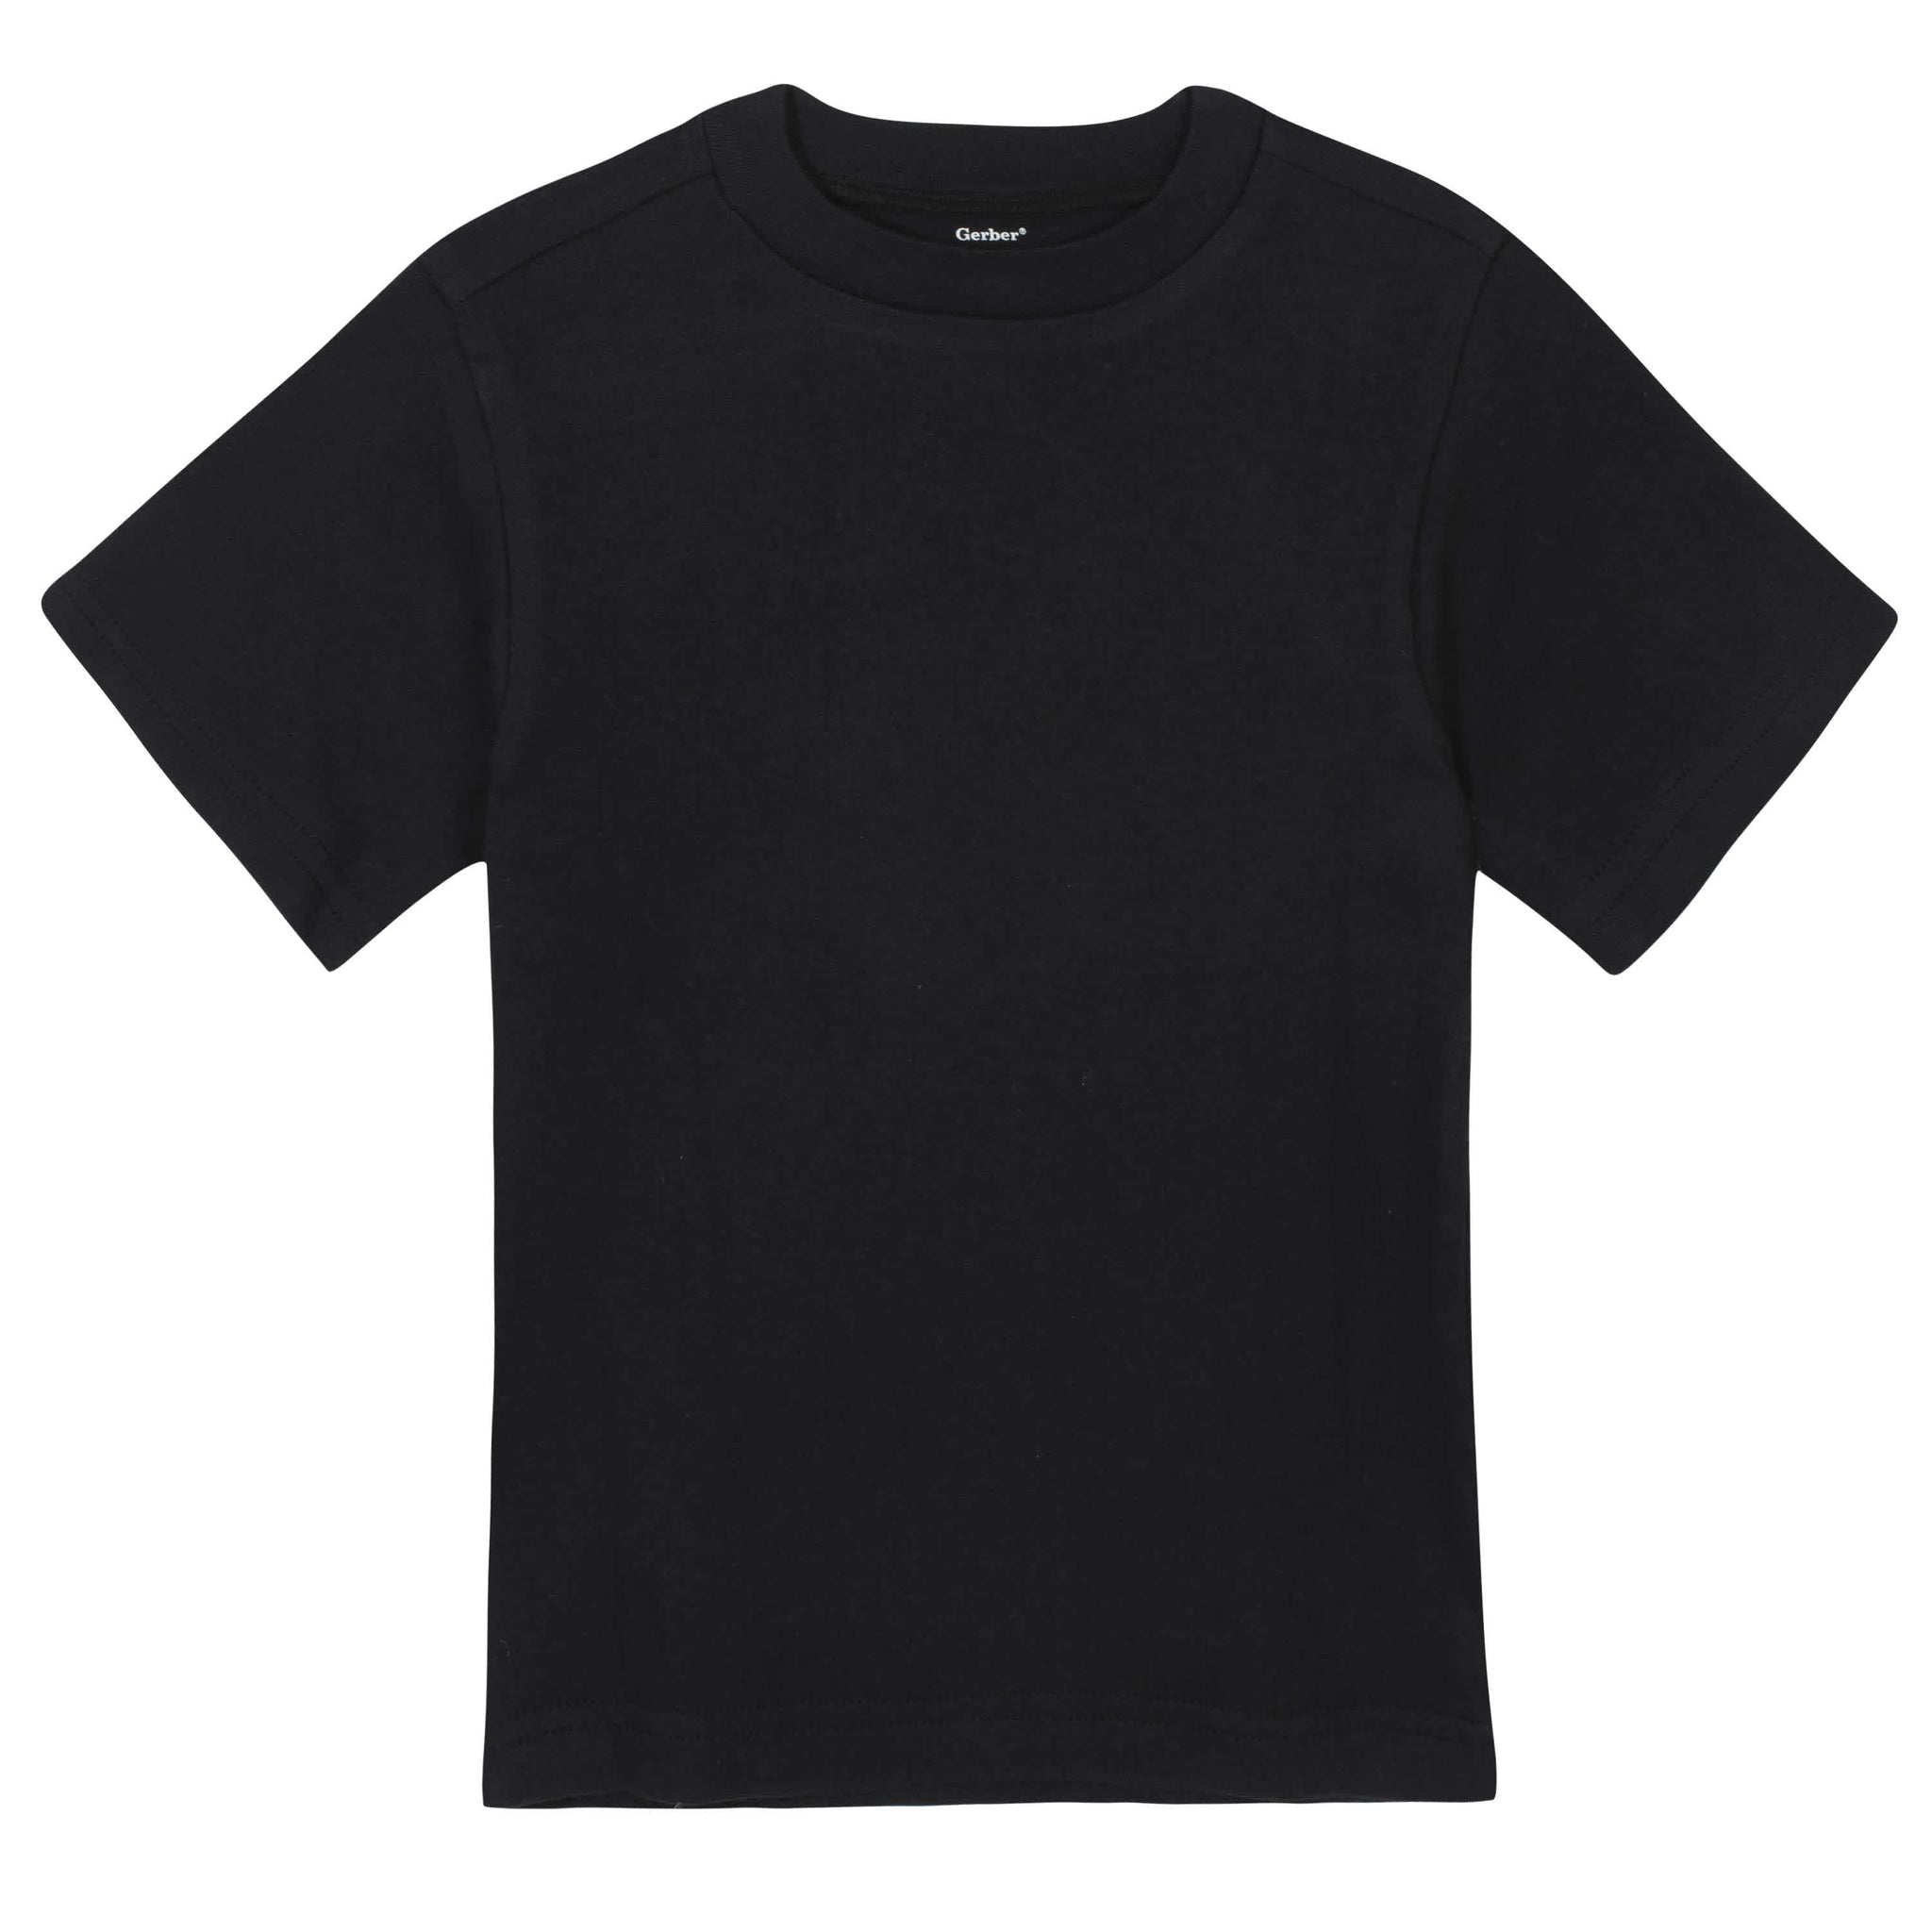 Gerber® Premium Black Short Sleeve Tee Shirt - 10 Colors Available